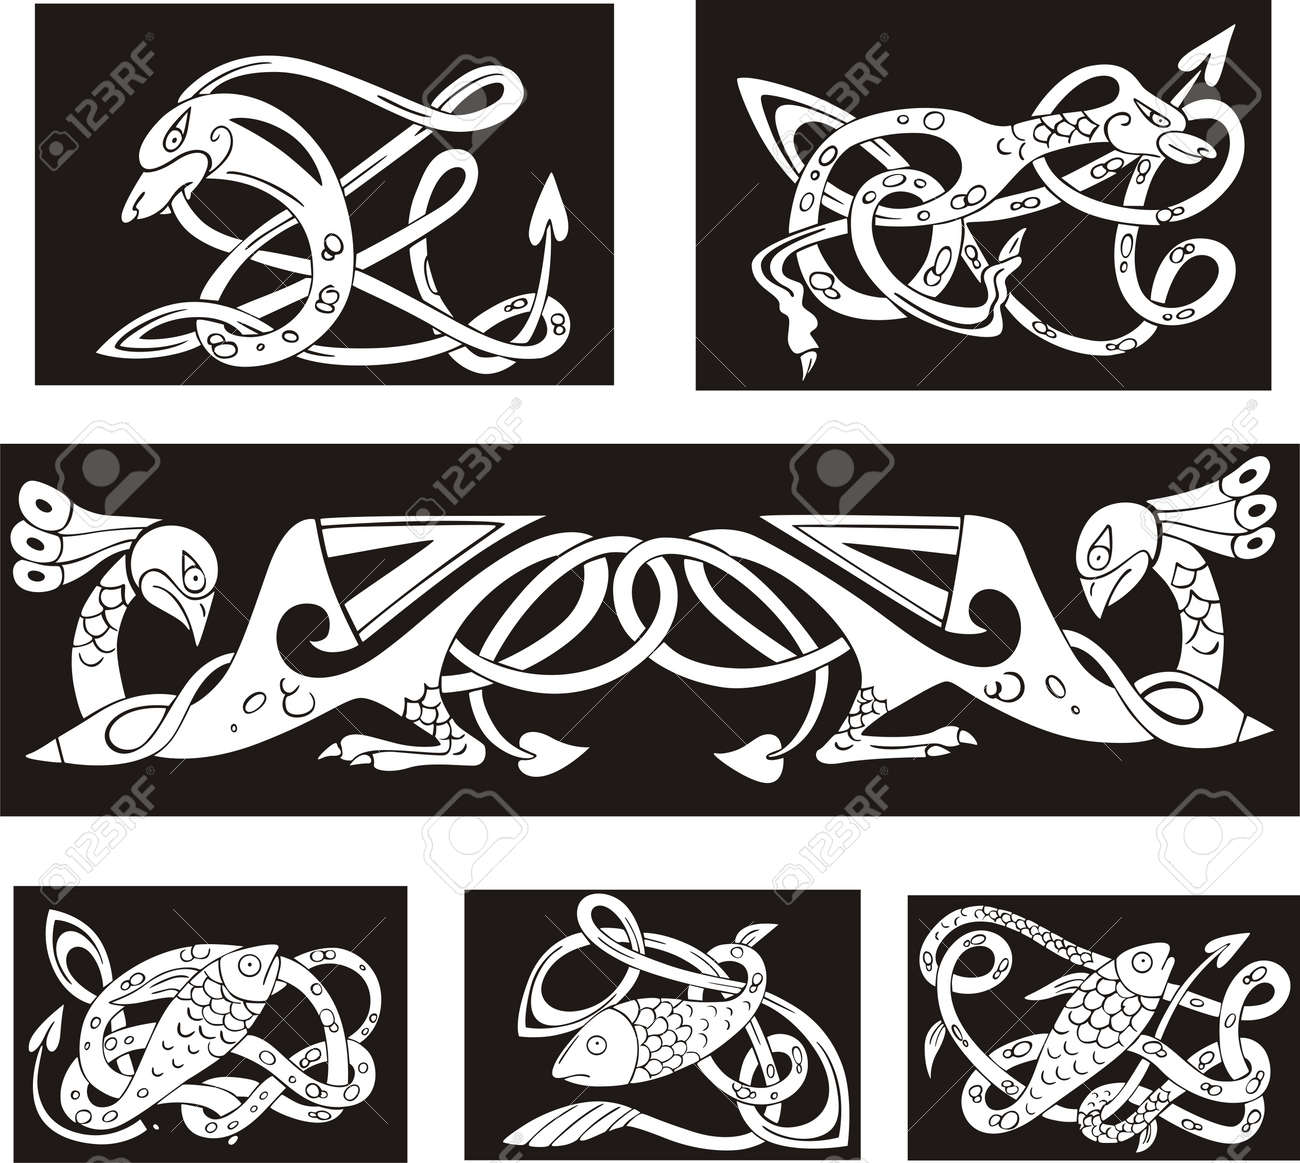 Celtic knot design elements patterns models and templates click 90 pronofoot35fo Image collections